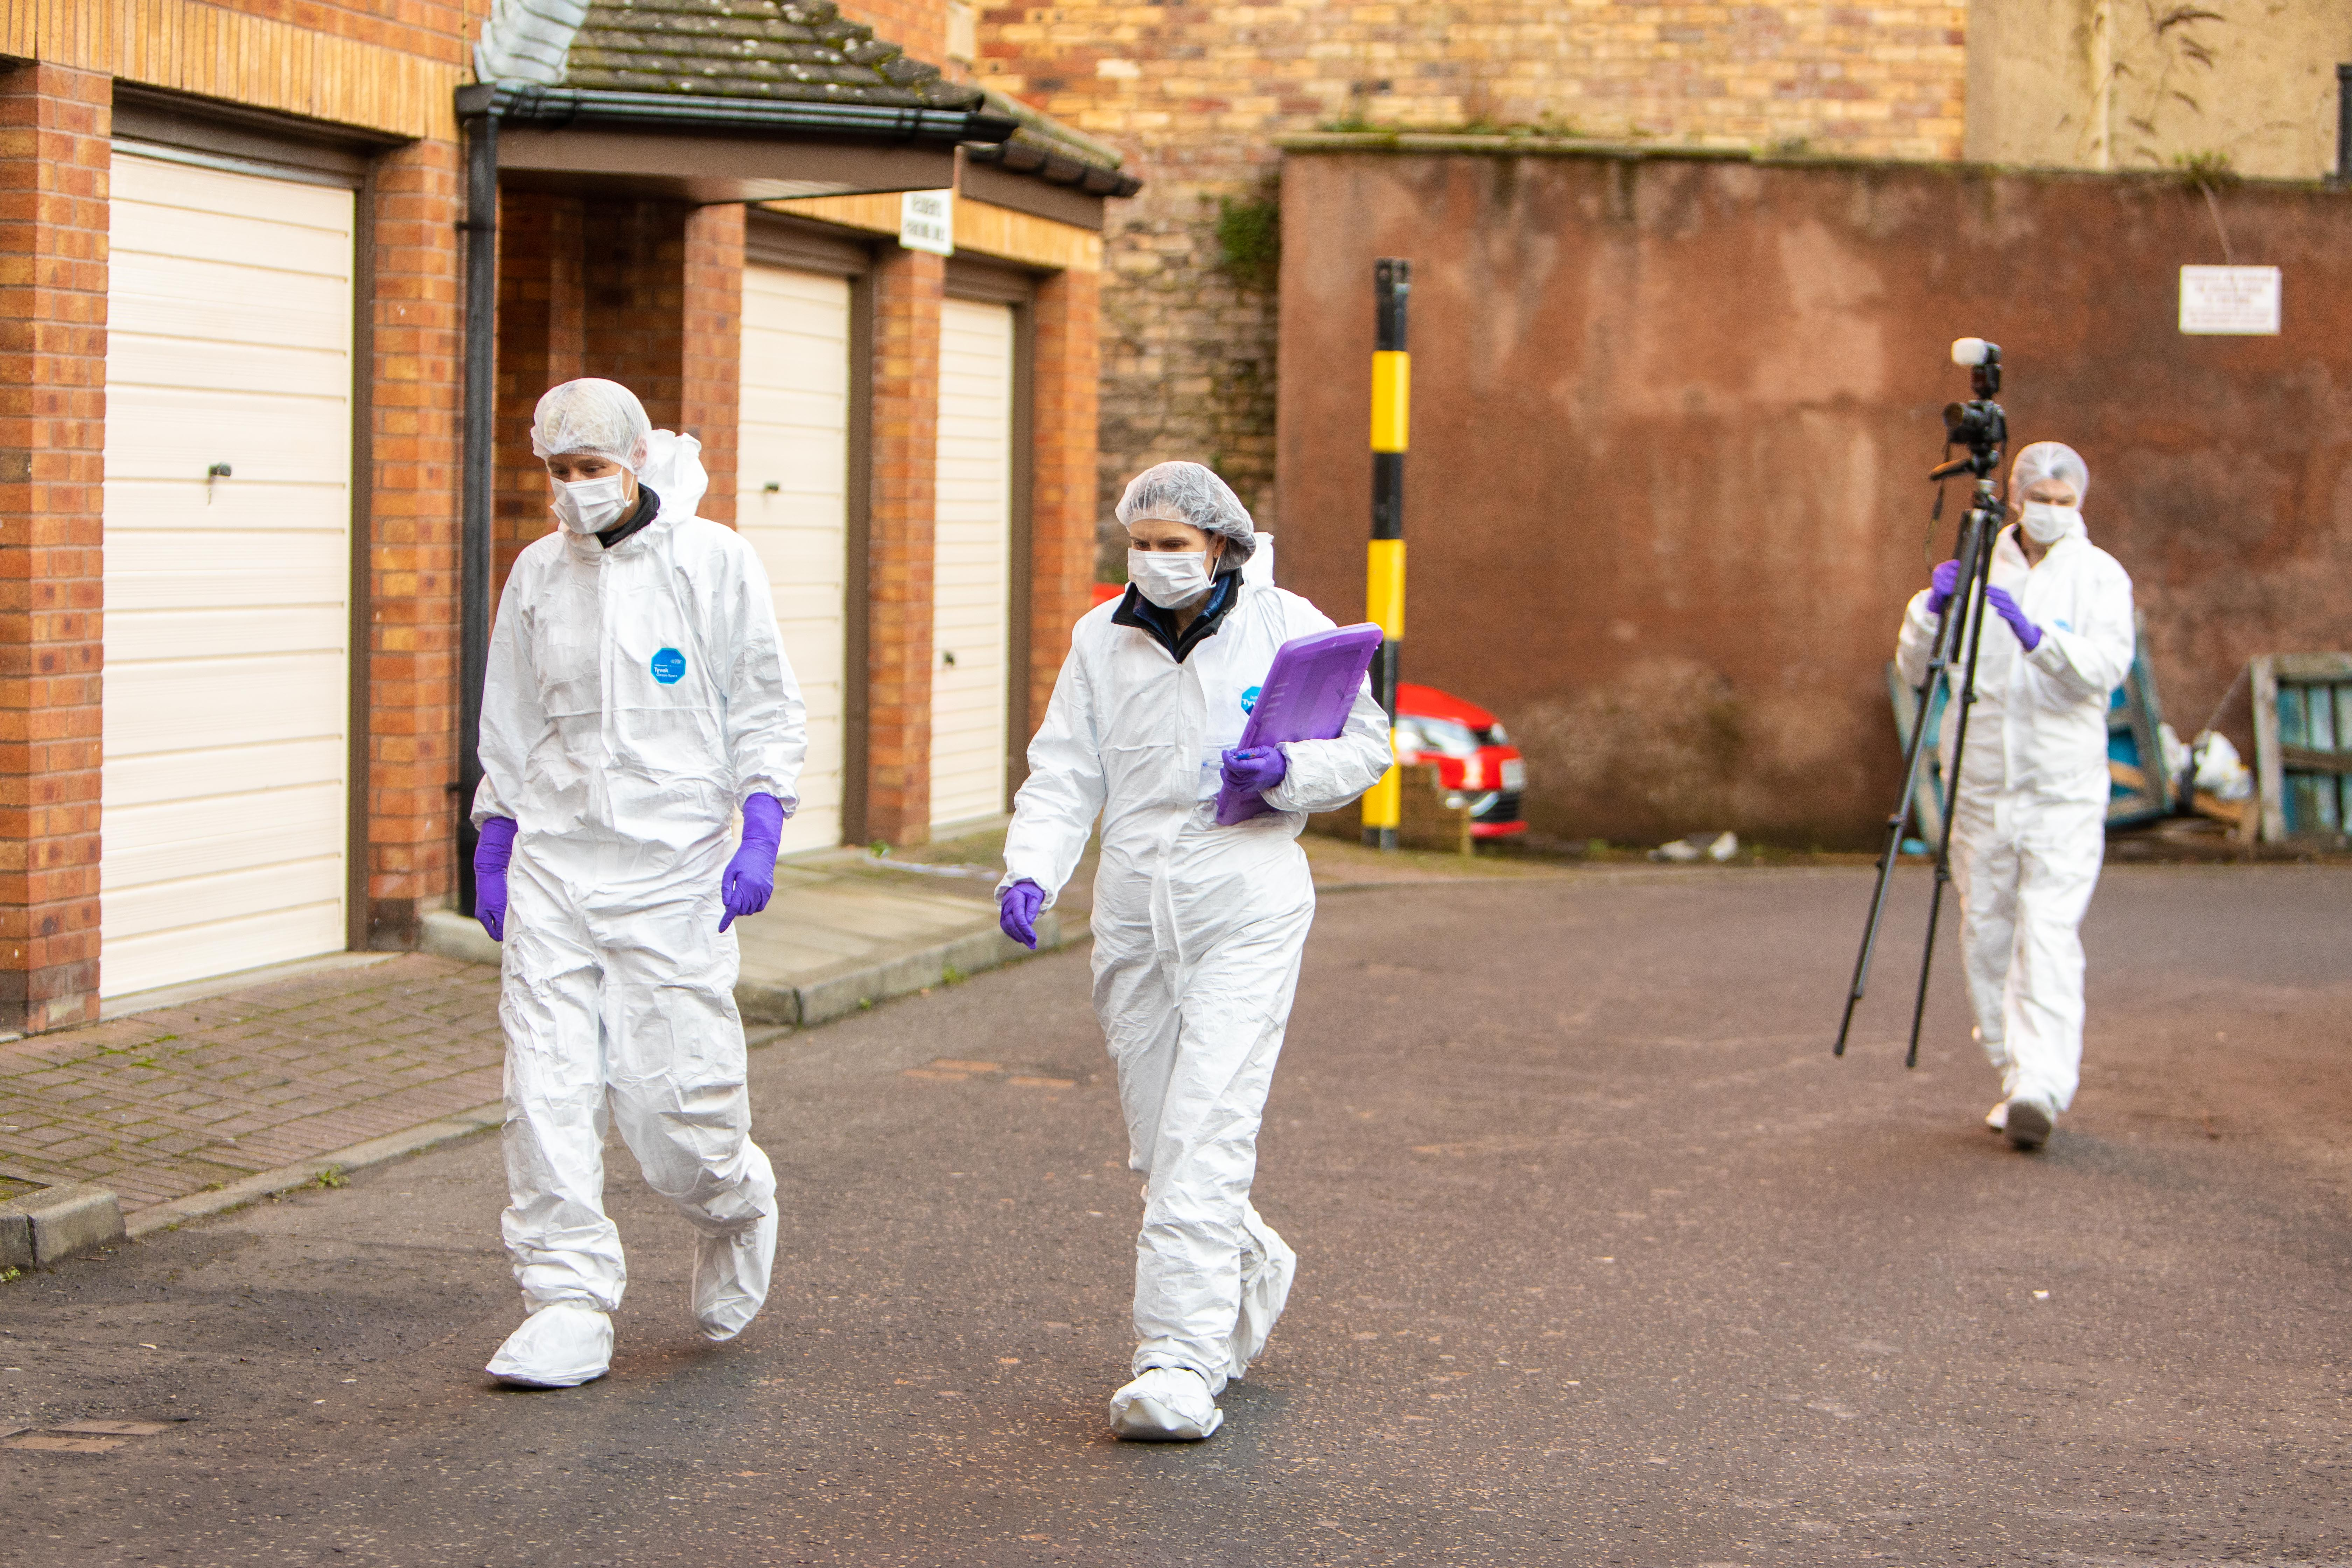 The scene on Monday morning, more than 24 hours after the man was found dead.